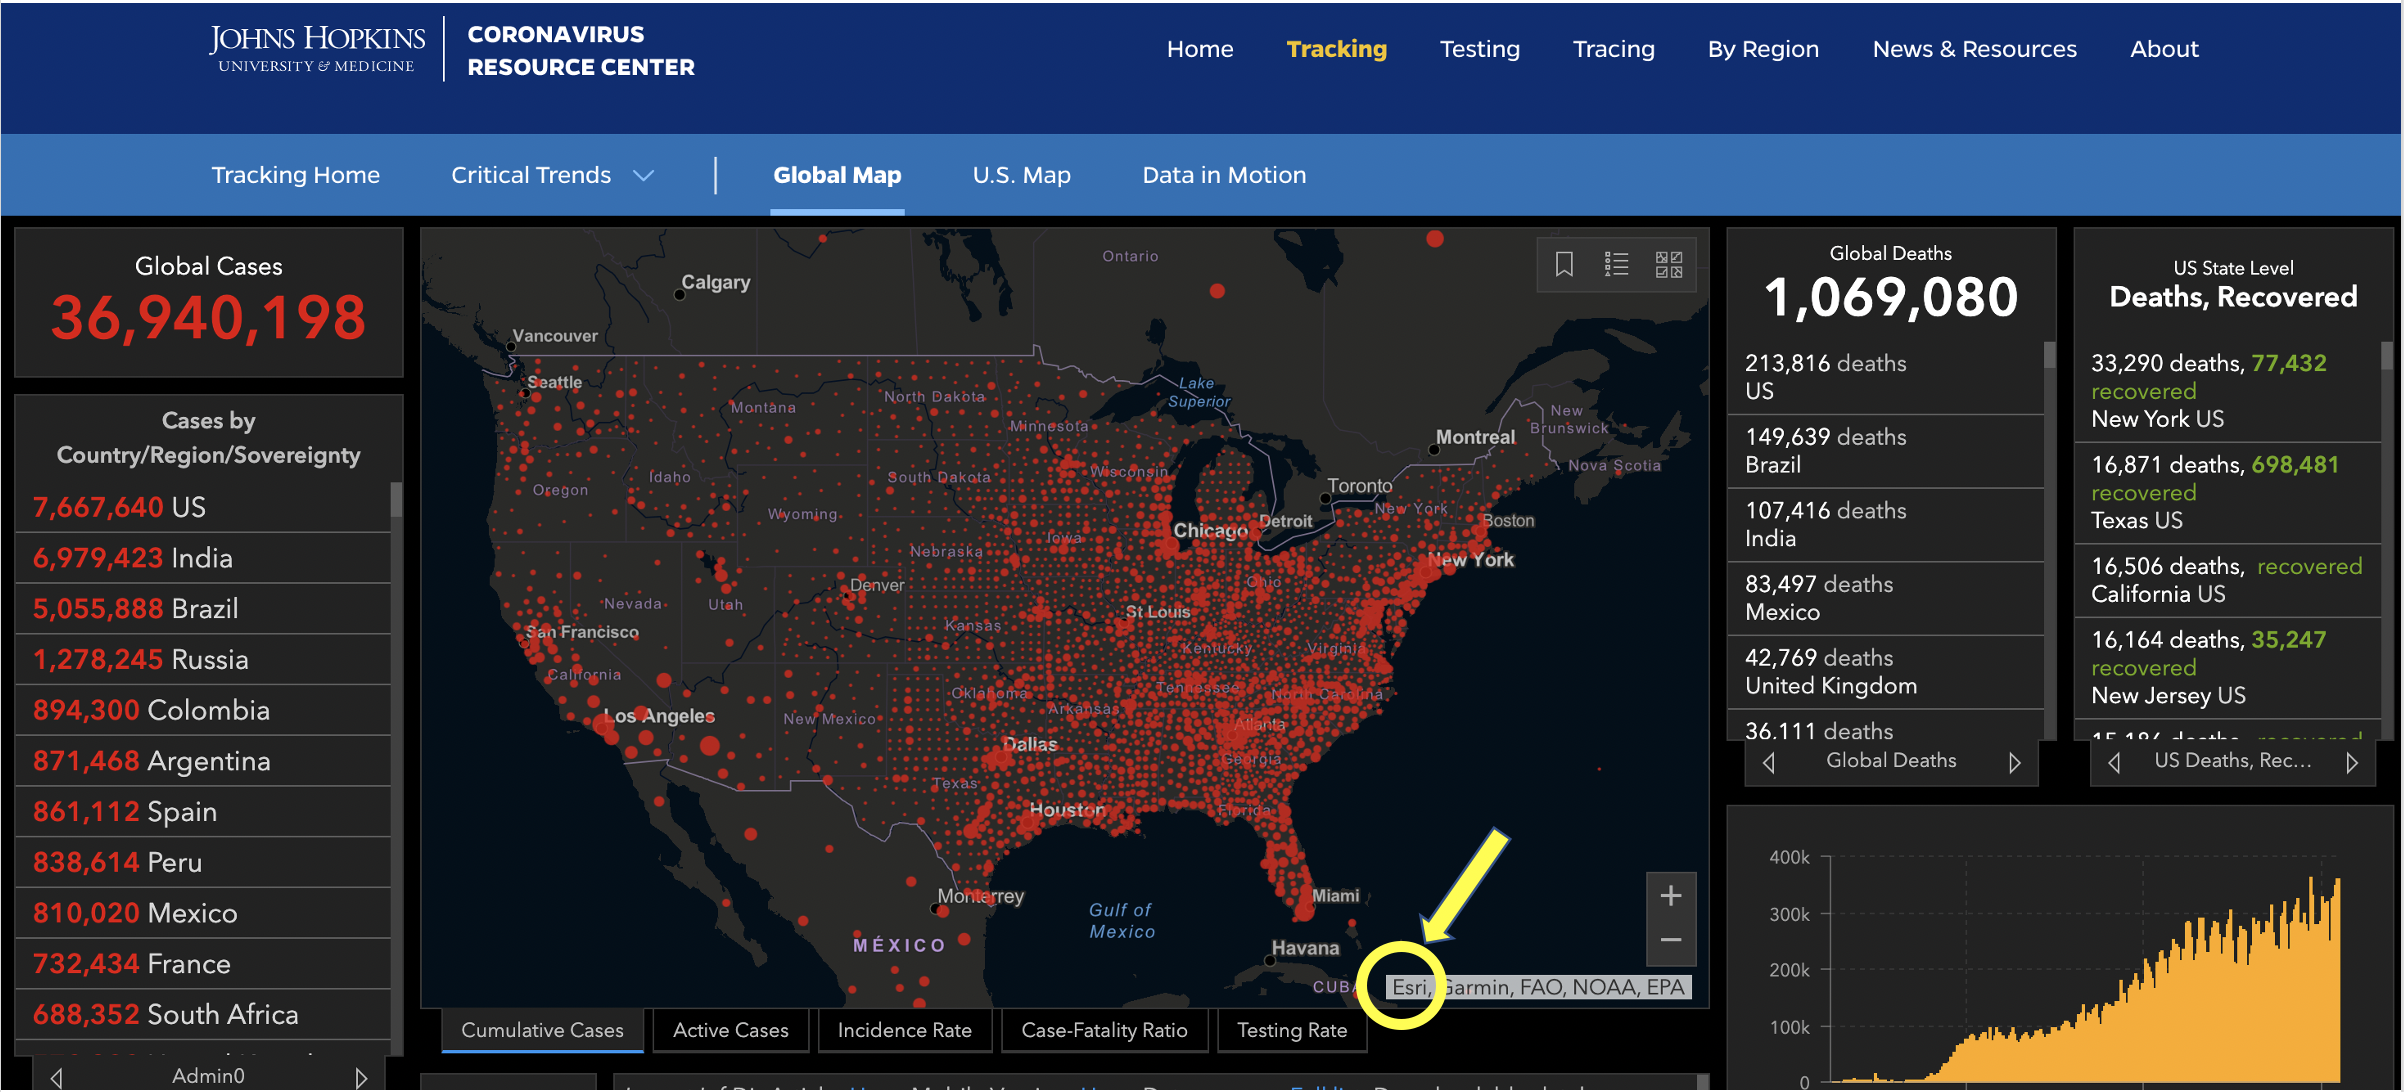 John Hopkins COVID-19 dashboard depends on ArcGIS from esri to quickly collect and display large amounts of data.